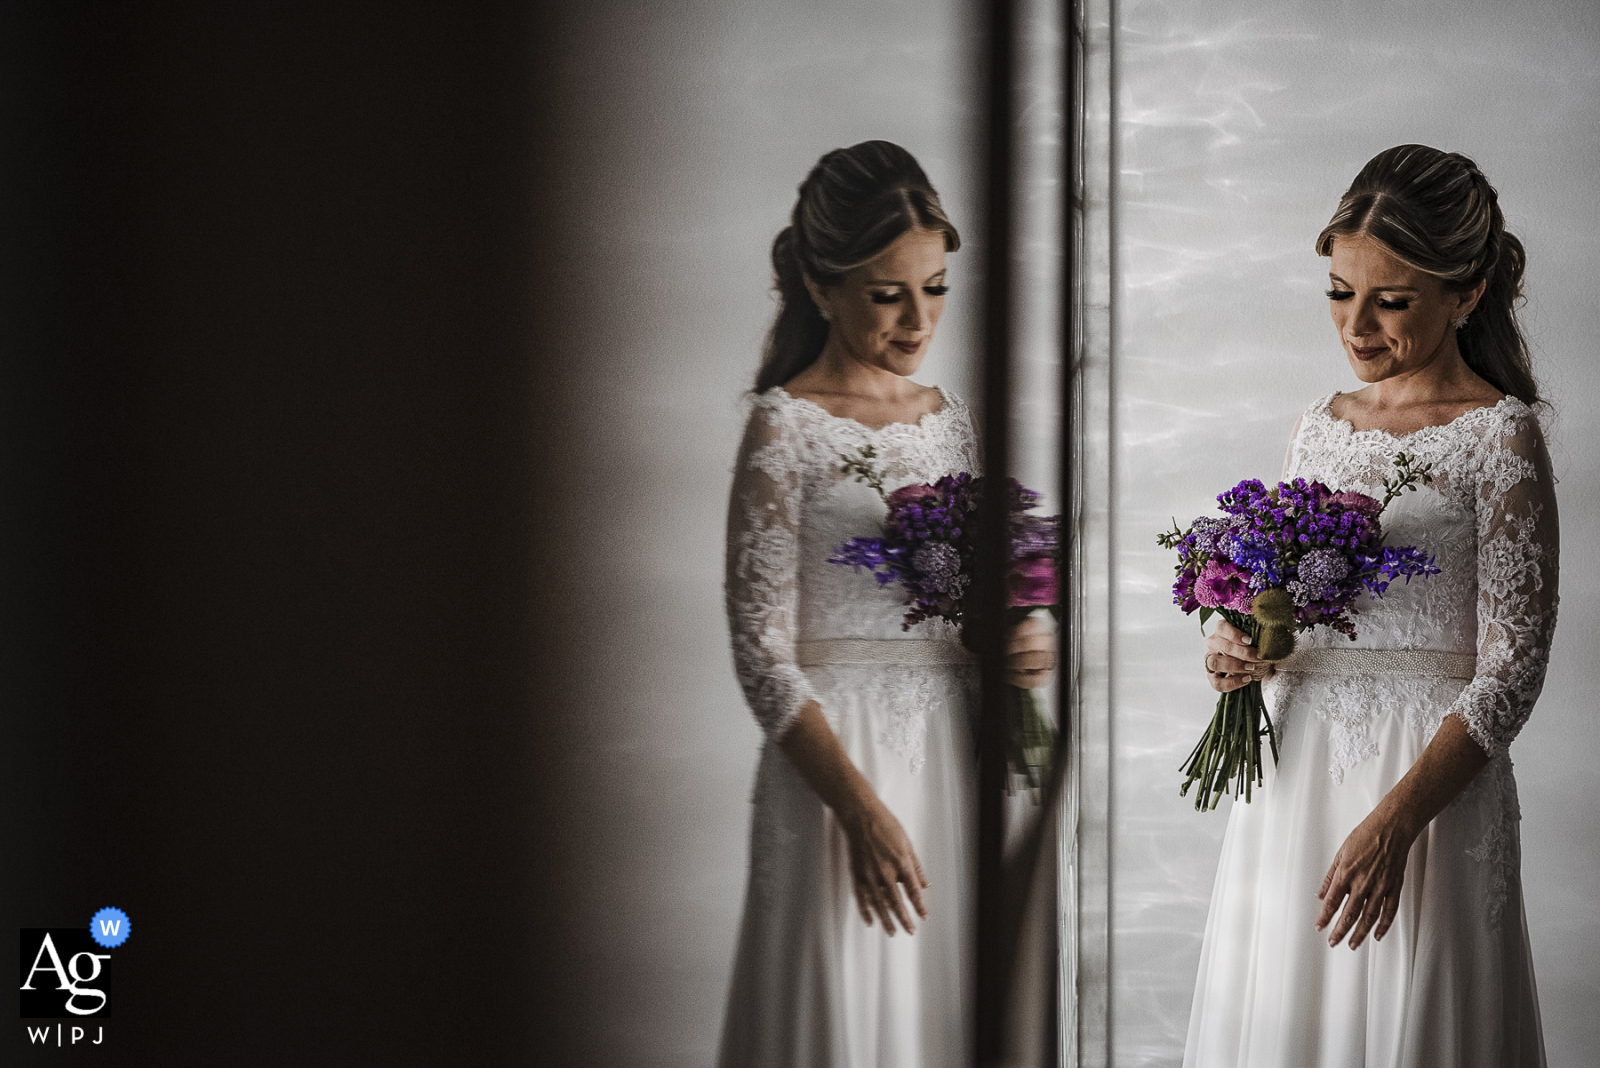 Casa da Noiva, Rio de Janeiro artistic wedding image of the bride holding her flowers and reflected in dark glass